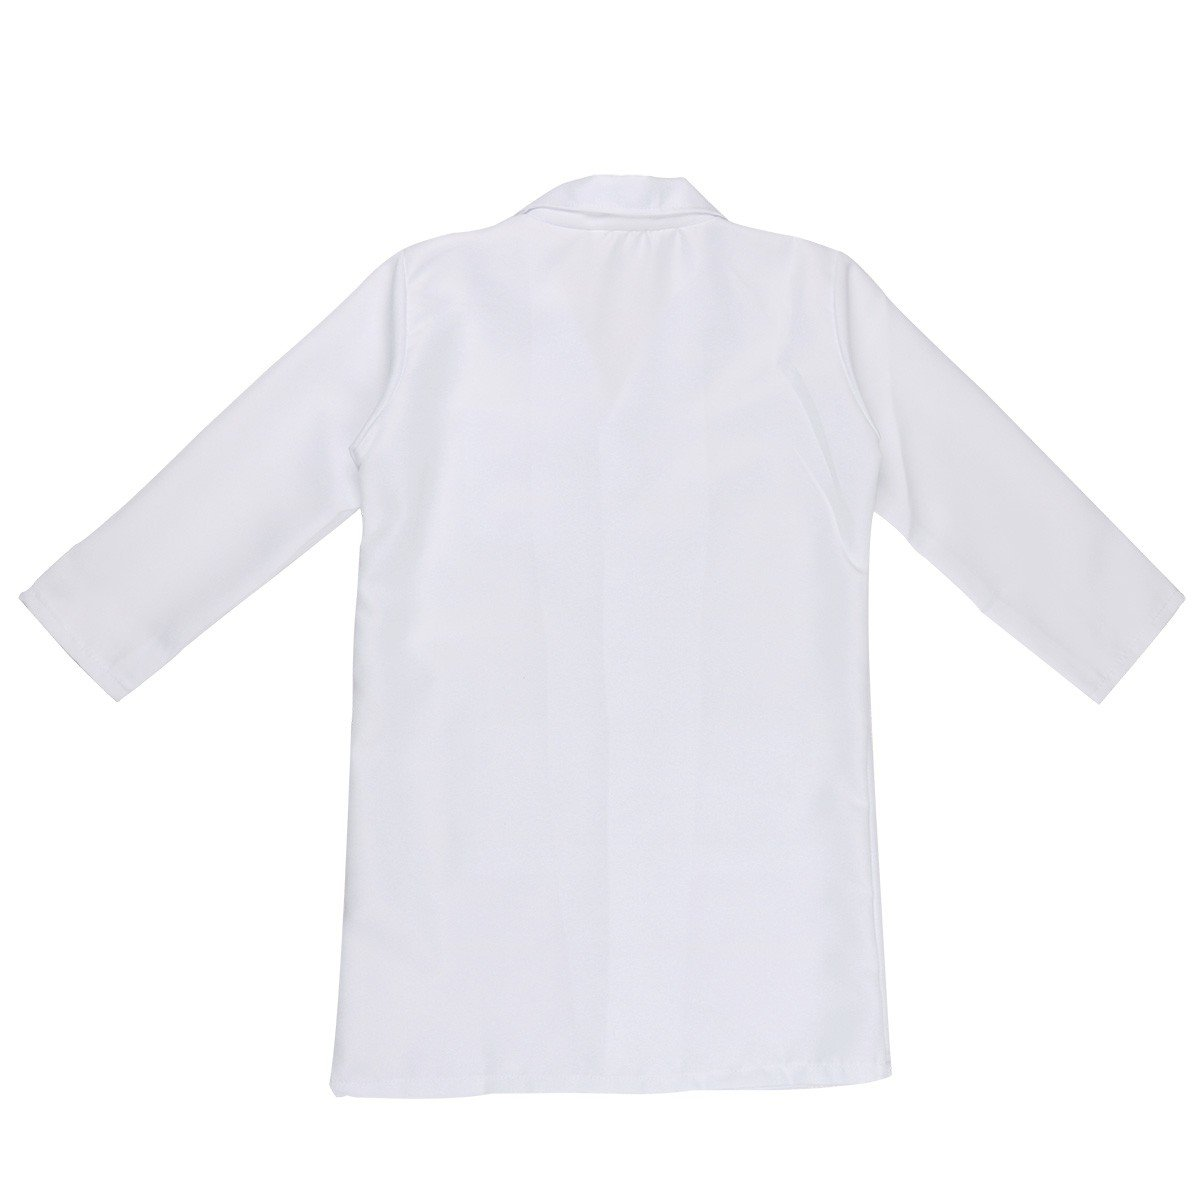 FEESHOW Kids Boy Girl Long Sleeve White Lab Coat Doctor Uniform Outfit Cosplay Costume White 7-8 by EESHOW (Image #2)